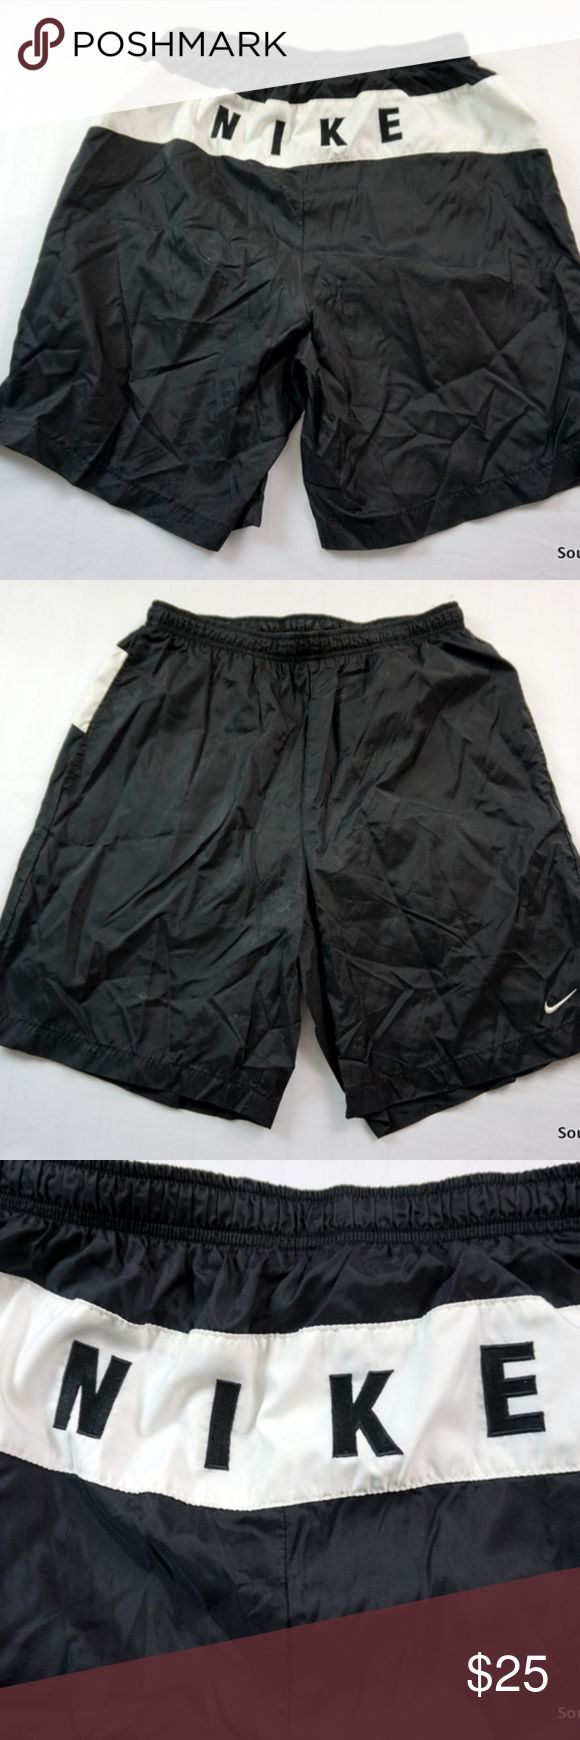 """VTG Nike Swim Shorts Spellout Script Logo Large Vintage 90s Nike Script Spellout Black Swim Trunks Men Large Embroidered 1990s Rare Design Swim Shorts Swimming Shorts 90s Fashion  Brand:  Nike Size:     Men's  Large Color:   Black Material: Body 100% Polyester, Lining 100% Nylon   Detailed Measurements: (Front Side of Garment has been measured laying flat on a table)  Waist:    30"""" inches (measured flat, front side) Inseam:  8 """" inches Length:  19""""inches Nike Swim Swim Trunks"""